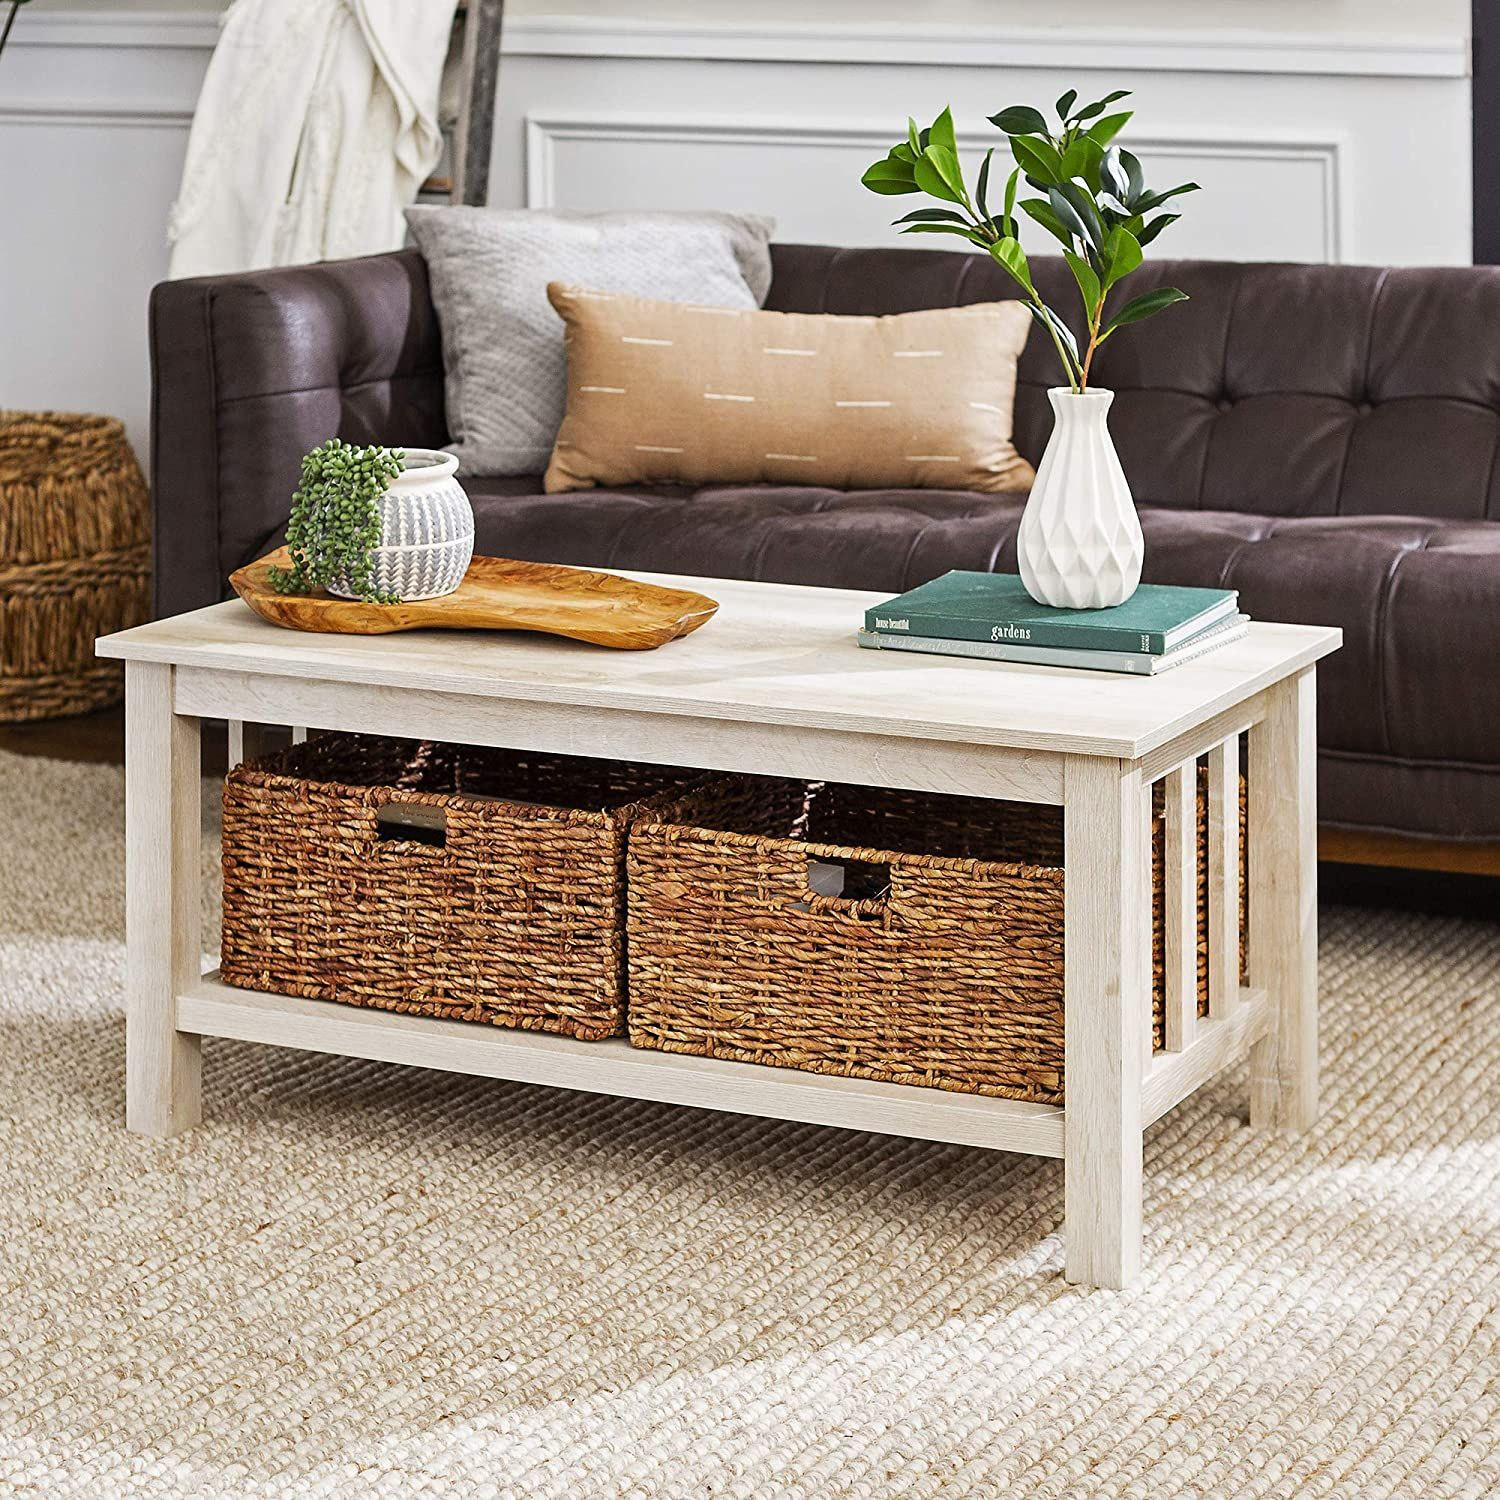 We Furniture Rustic Wood Rectangle Coffee Accent Table Storage Baskets Living Room 40 Inch Whi In 2020 Walnut Furniture Living Room Furniture Wood Pallet Furniture #walnut #furniture #living #room